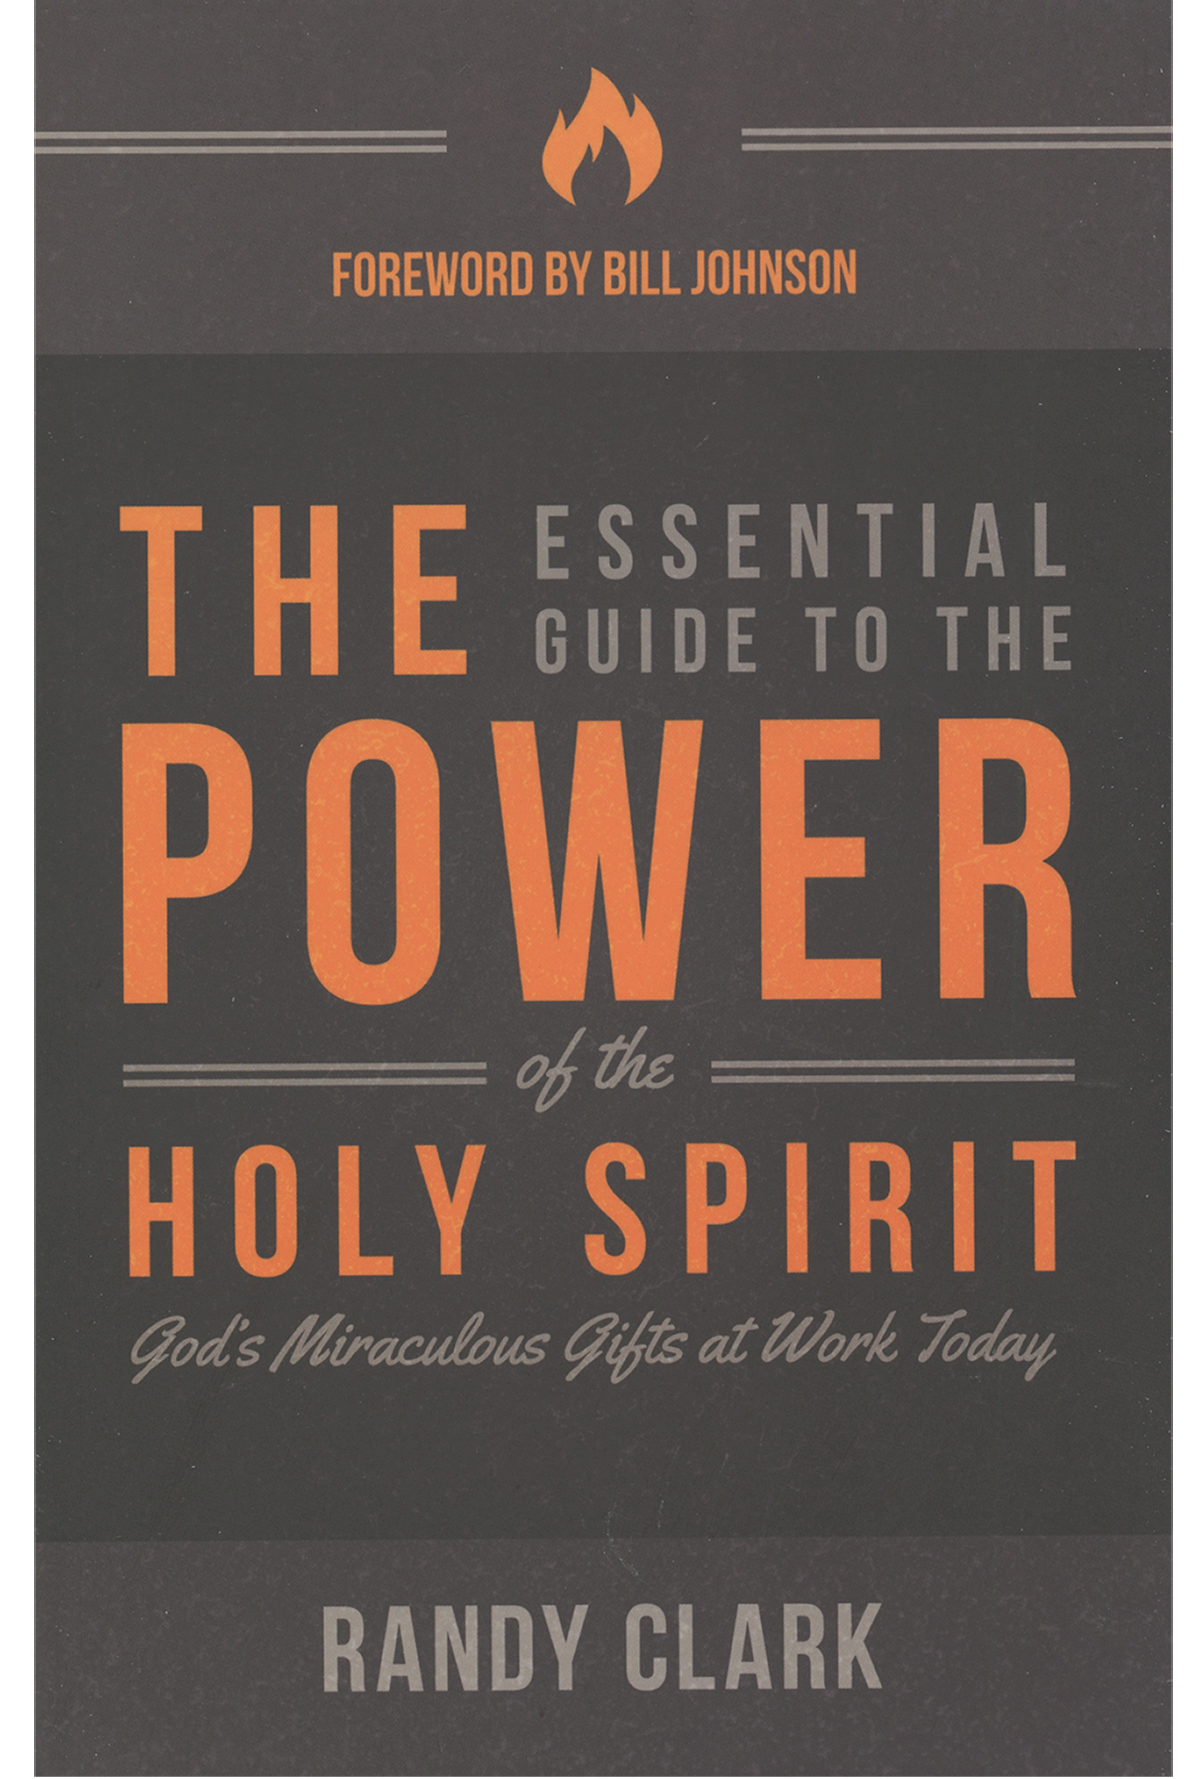 Essential guide to the power of the holy spirit by randy clark the essential guide to the power of the holy spirit thecheapjerseys Gallery